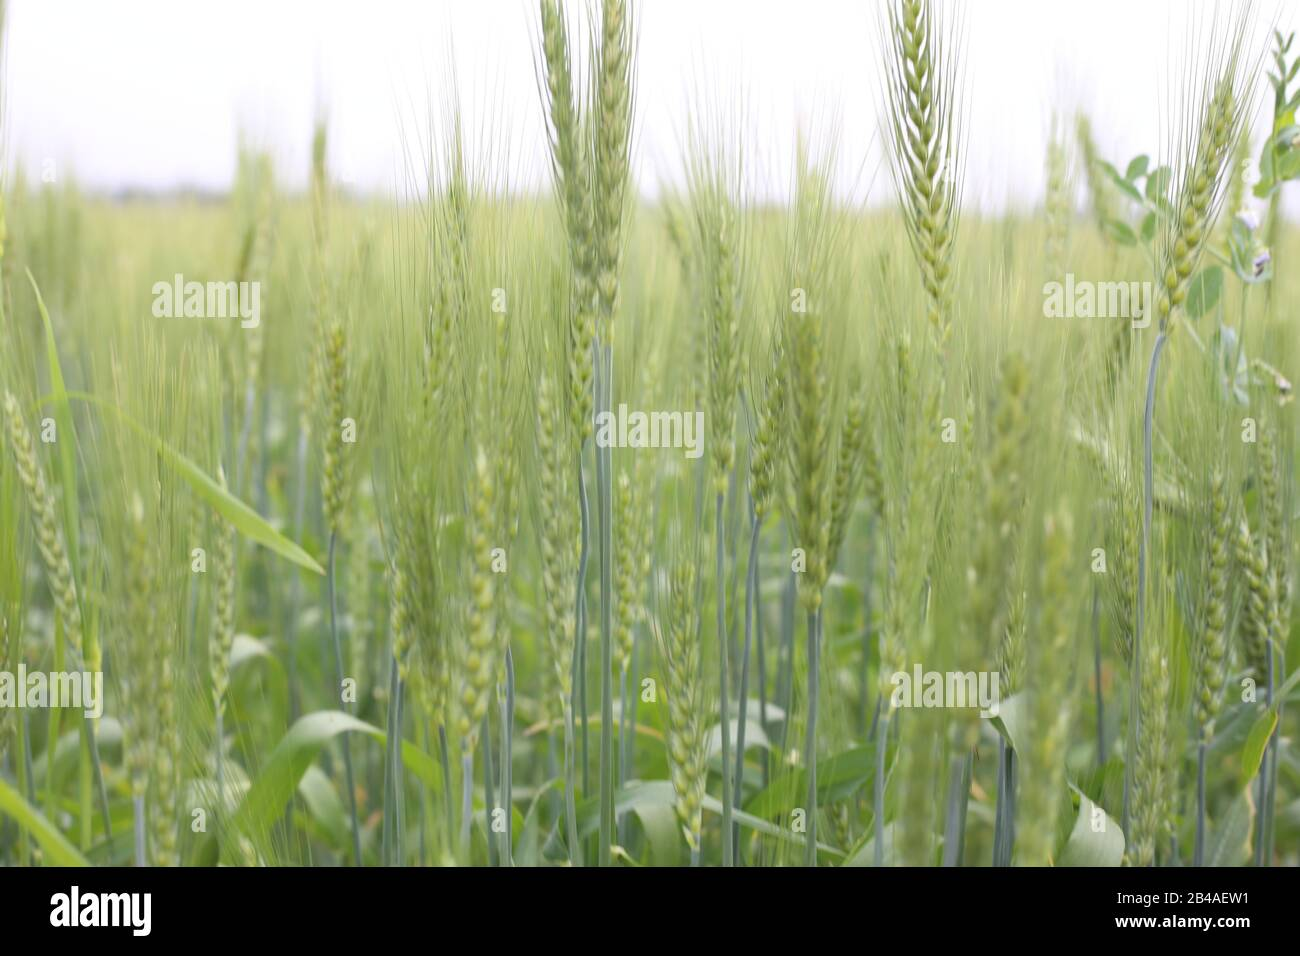 Green Wheat Cereal Crops Growing In Cultivated Field Stock Photo